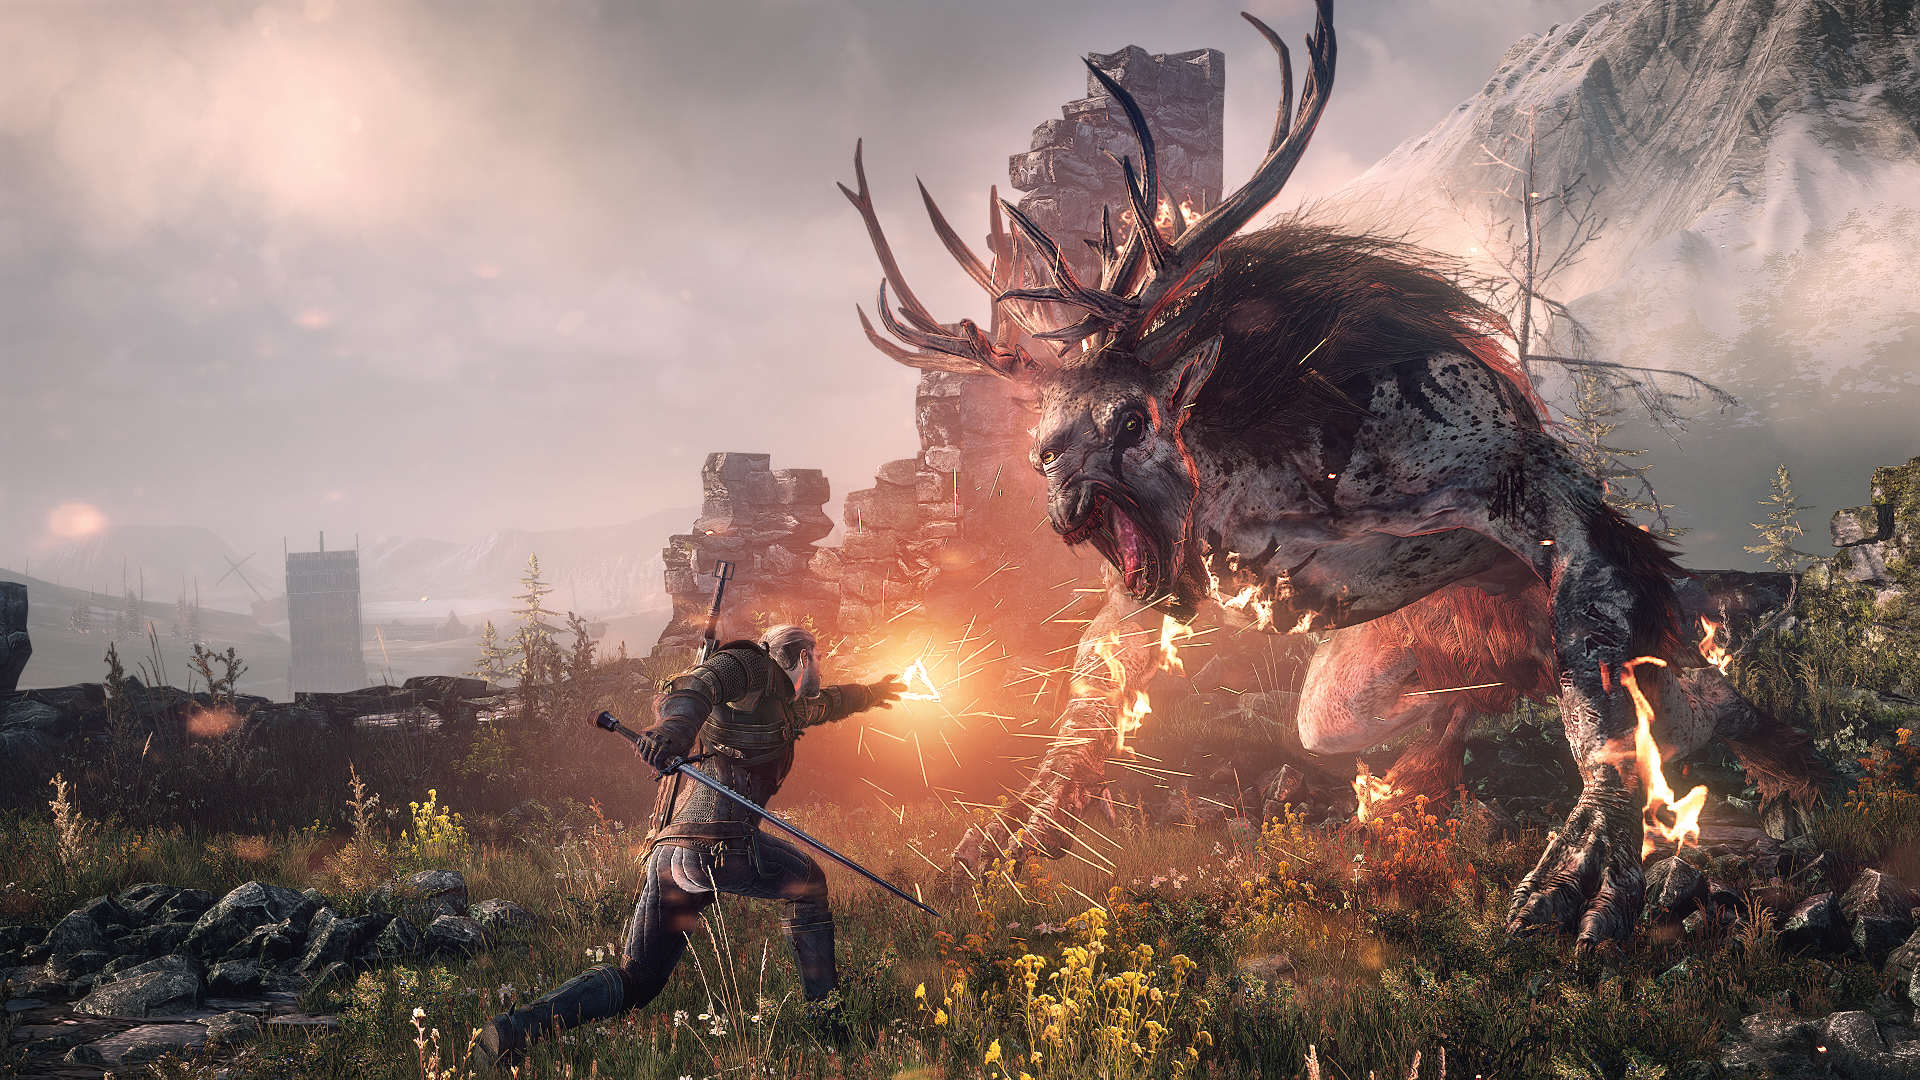 Heres All The Winners And Losers From The GDC Awards 2016 2457637 the witcher 3 wild hunt geralt vs fiend